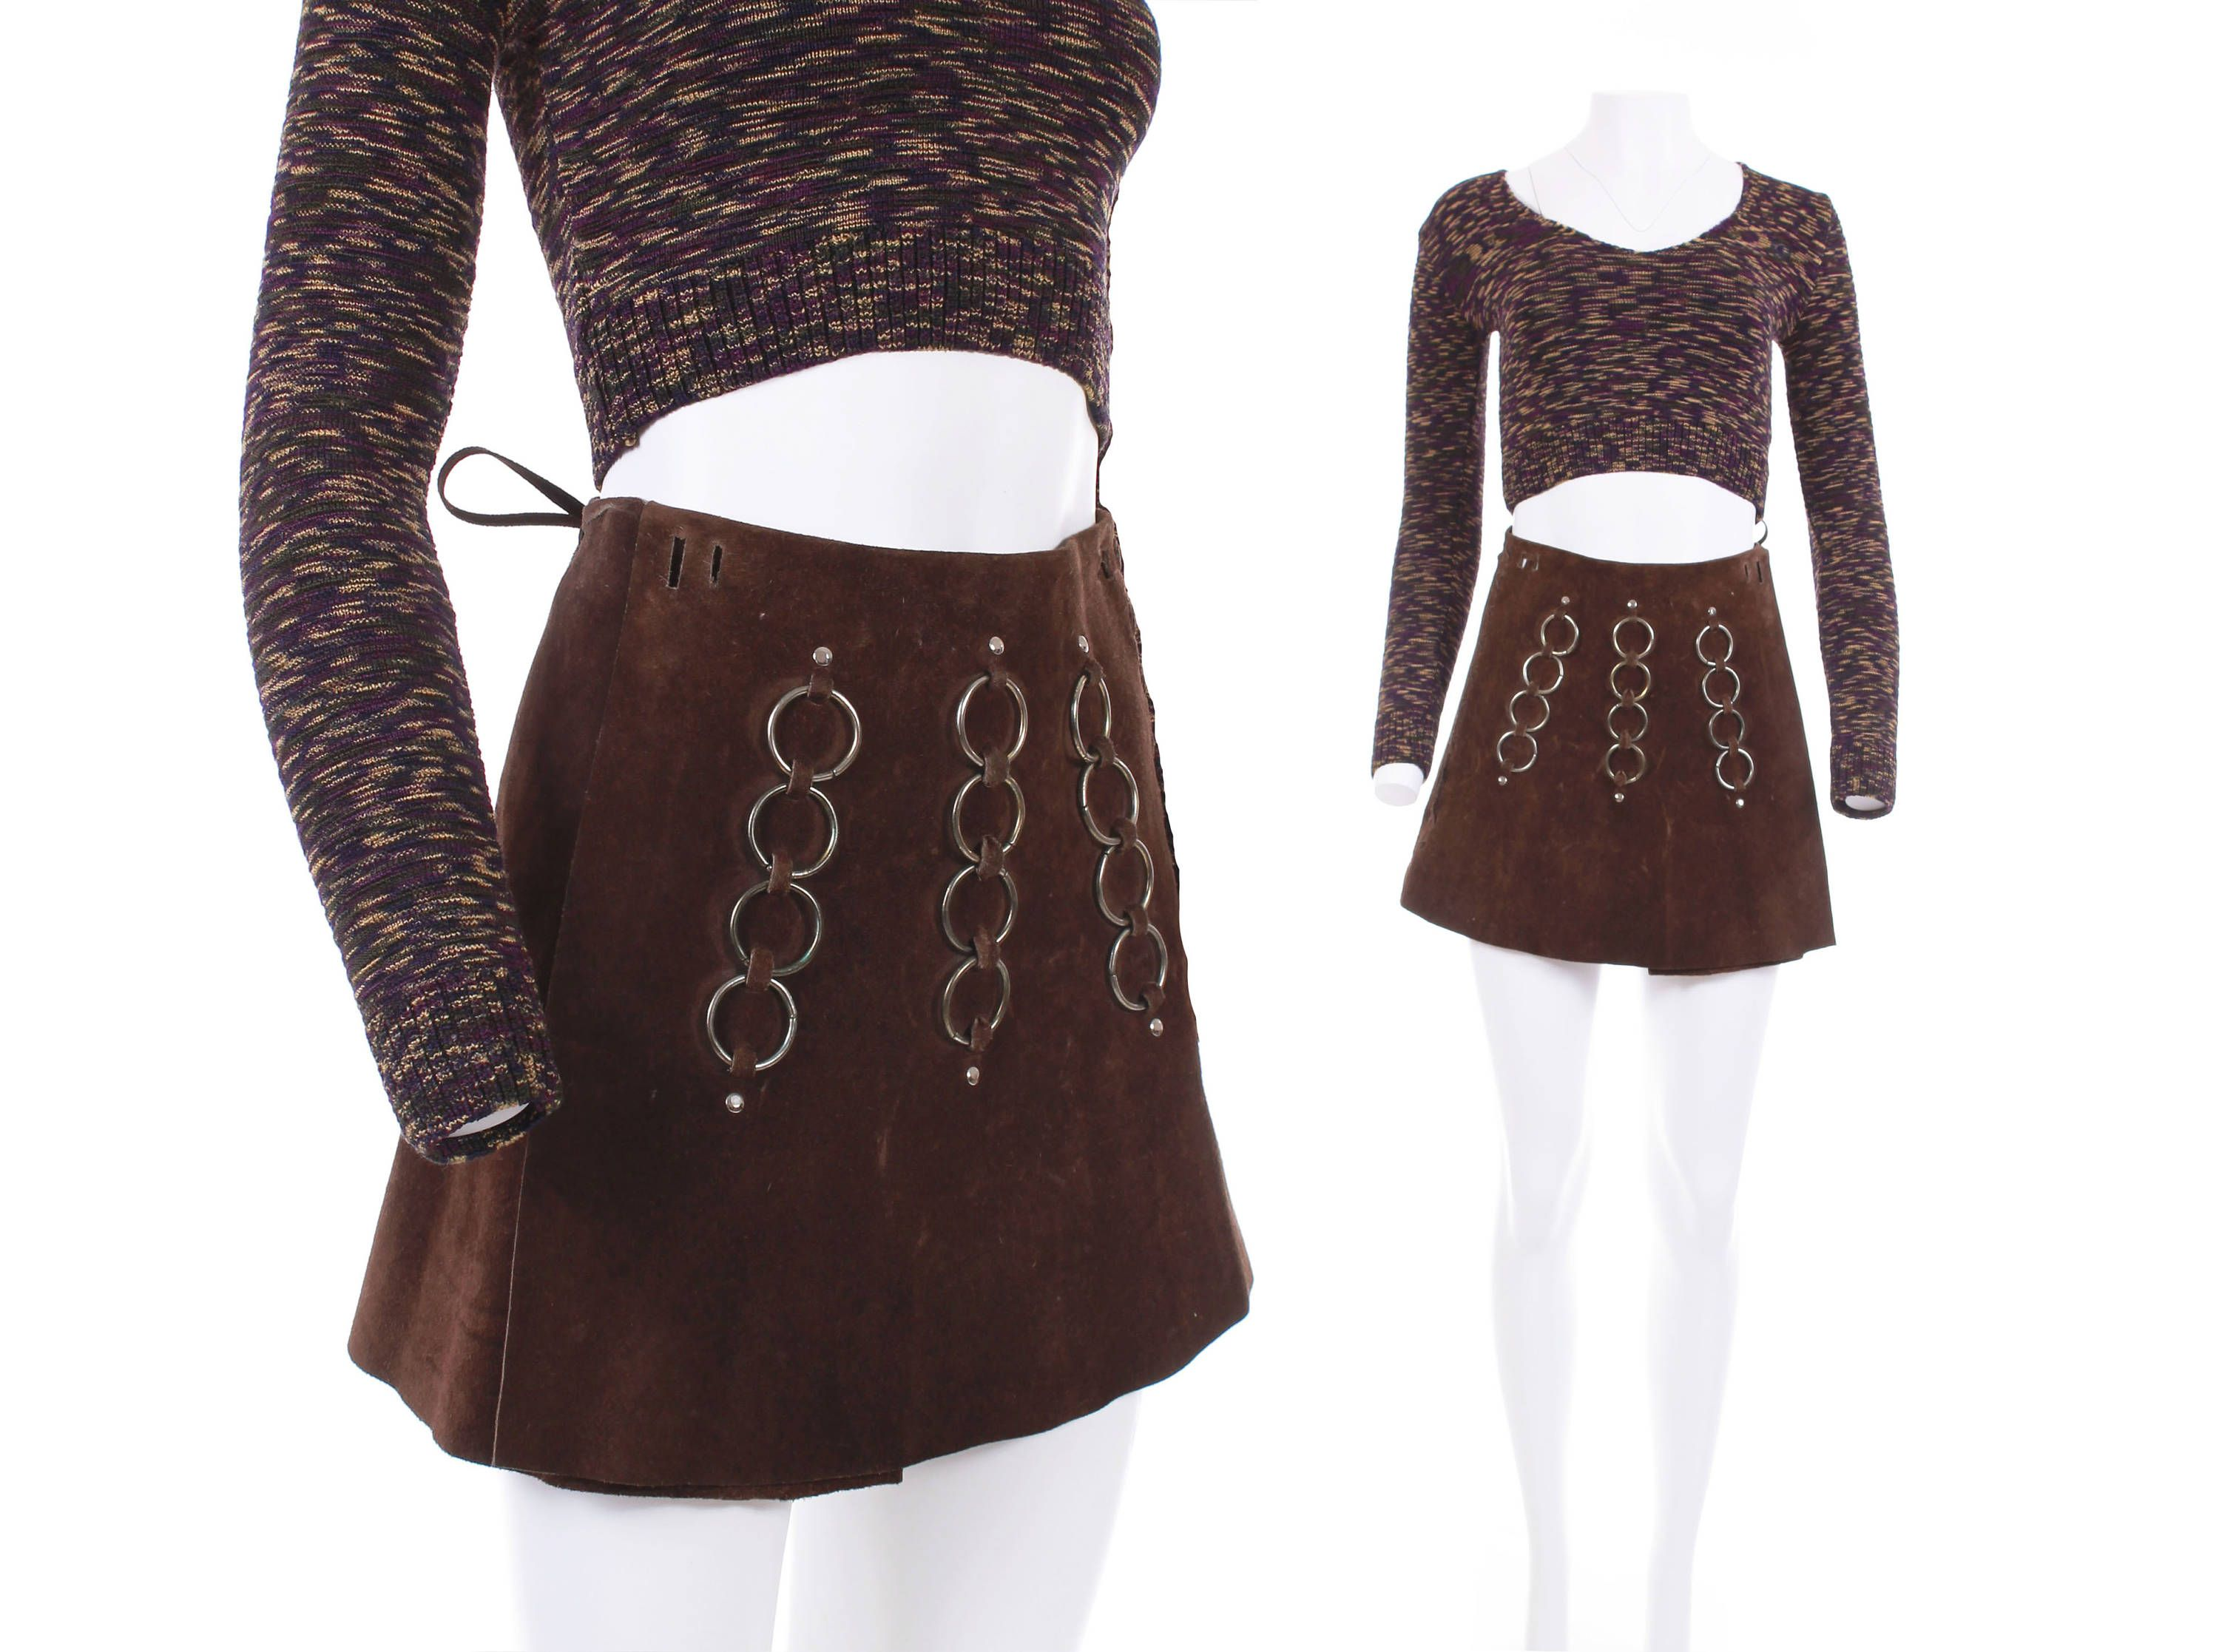 83a9fc0718 60s Vintage Suede O-Ring Mini Skirt Brown Genuine Leather High Waisted 70s  Boho Retro Mod RARE Women's Size Small by KCOVINTAGE on Etsy